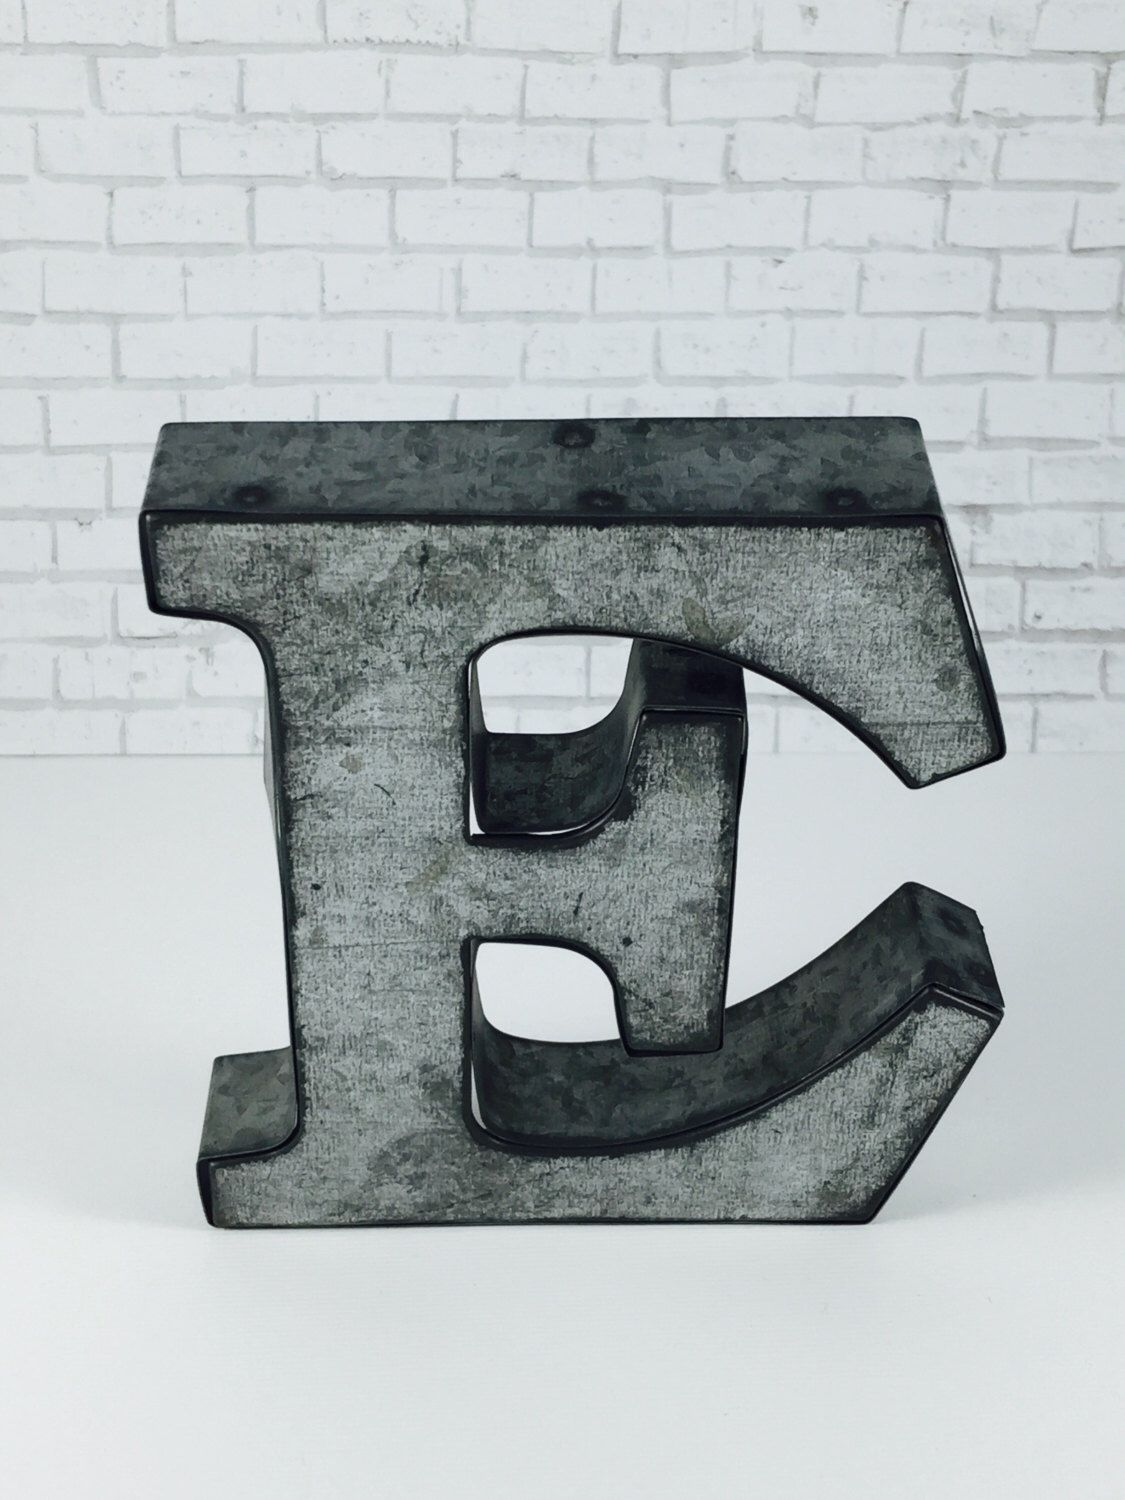 Galvanized Letter H On Salemetal Letterswall Decorgalvanized Metal Letterslove